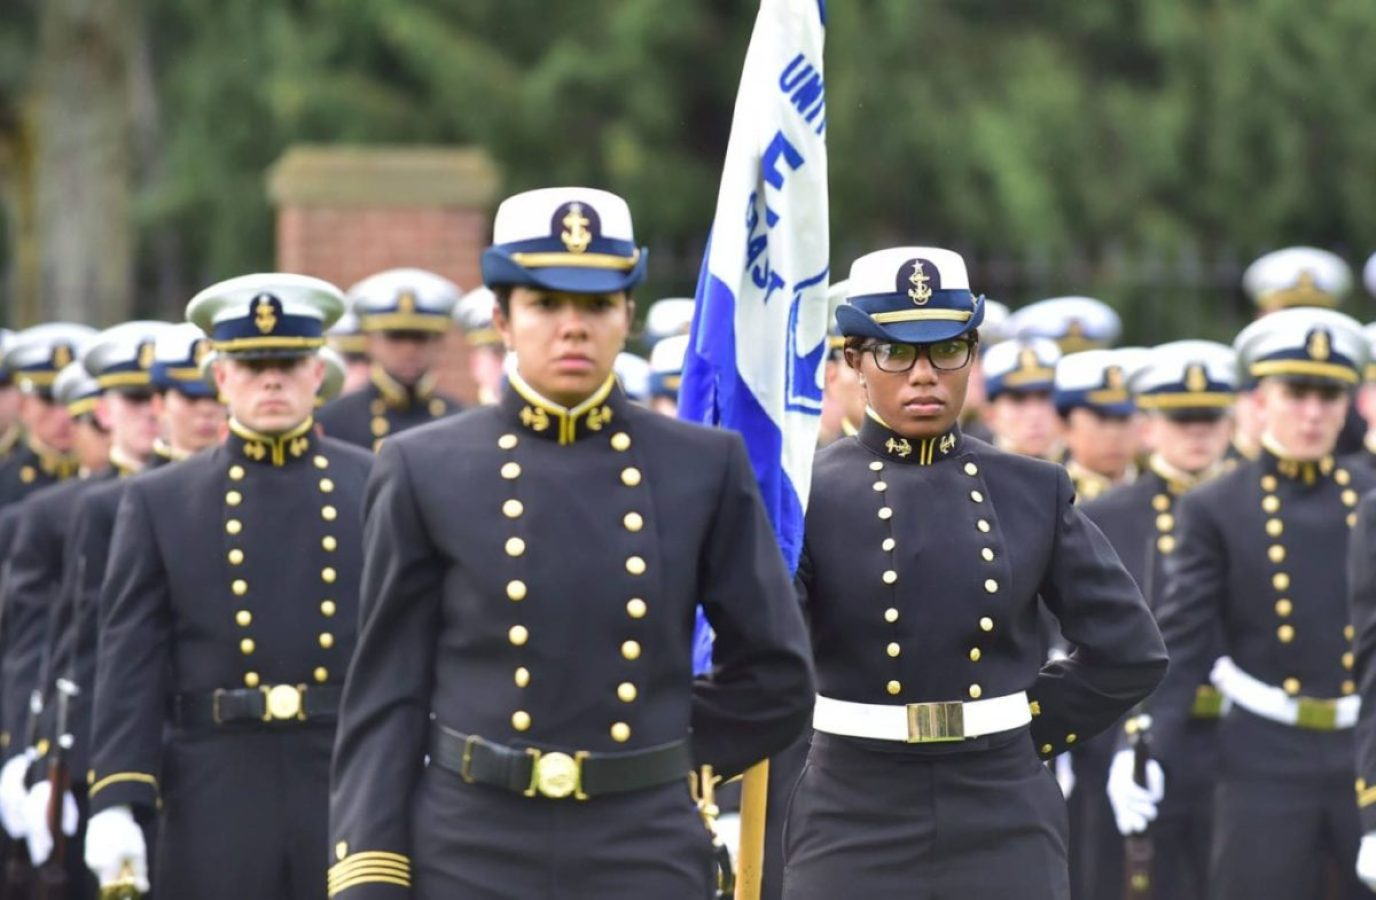 Coast Guard Academy Cadet Kayla Hughely holds the Echo Company flag during the Corps of Cadets Regimental Review, Sept. 22, 2018. Approximately 40 percent of the Coast Guard Academy Cadets are women, the highest percentage of any service.